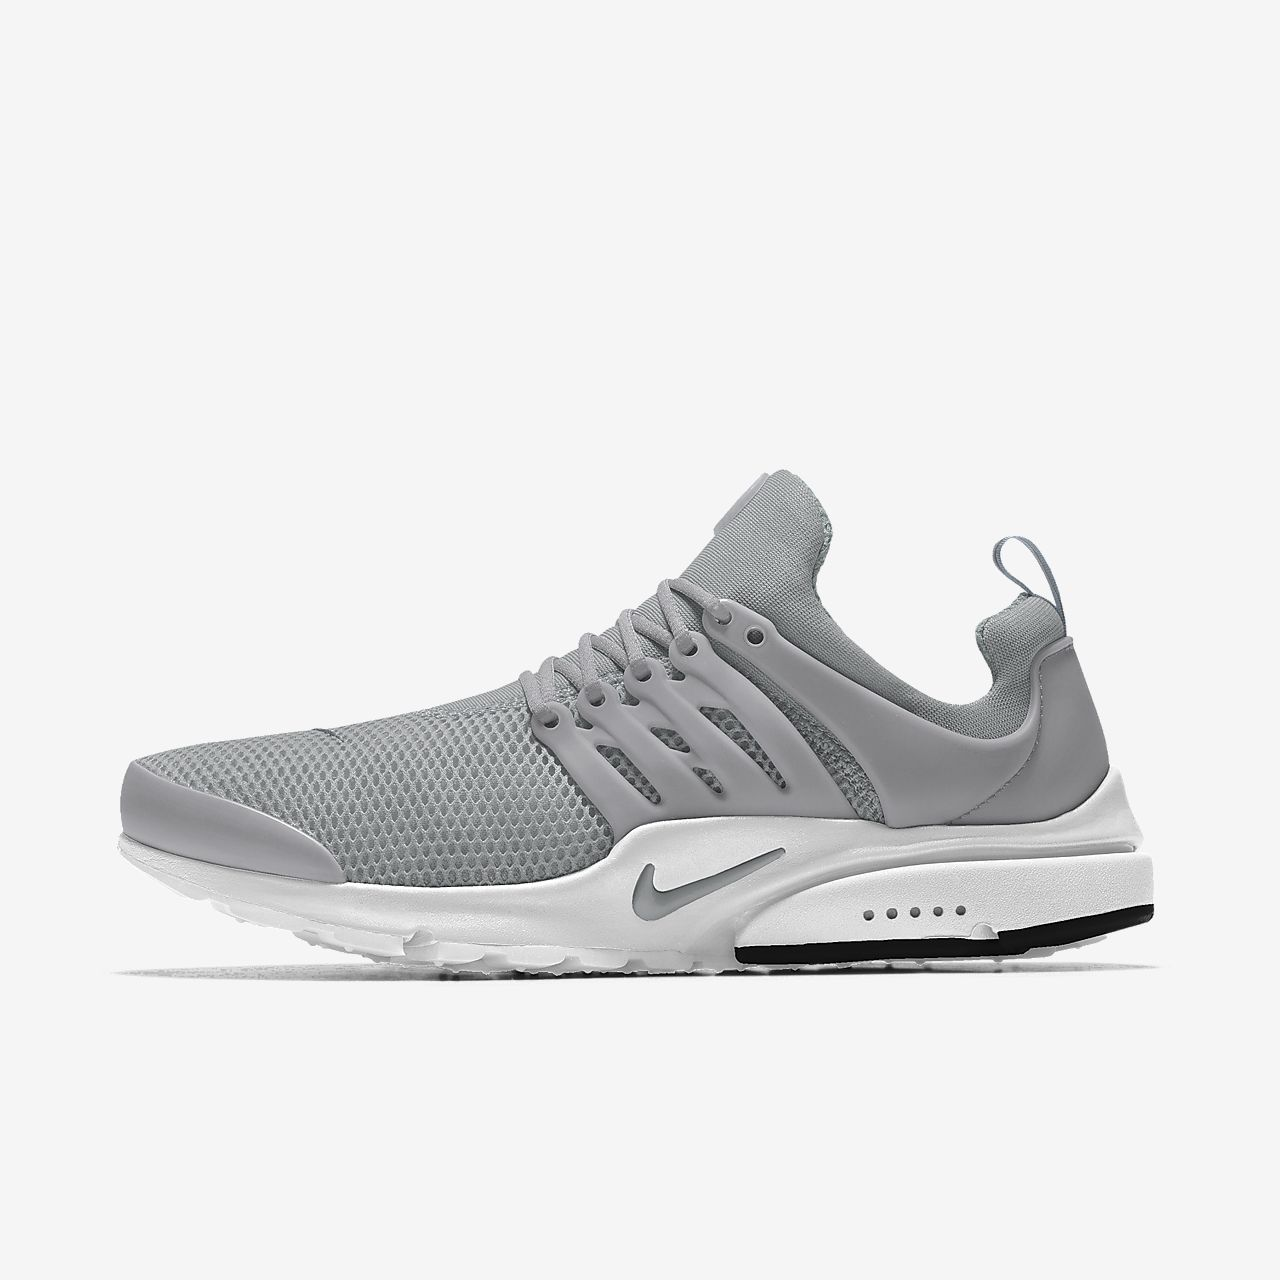 Nike Air Presto By You tilpasset herresko